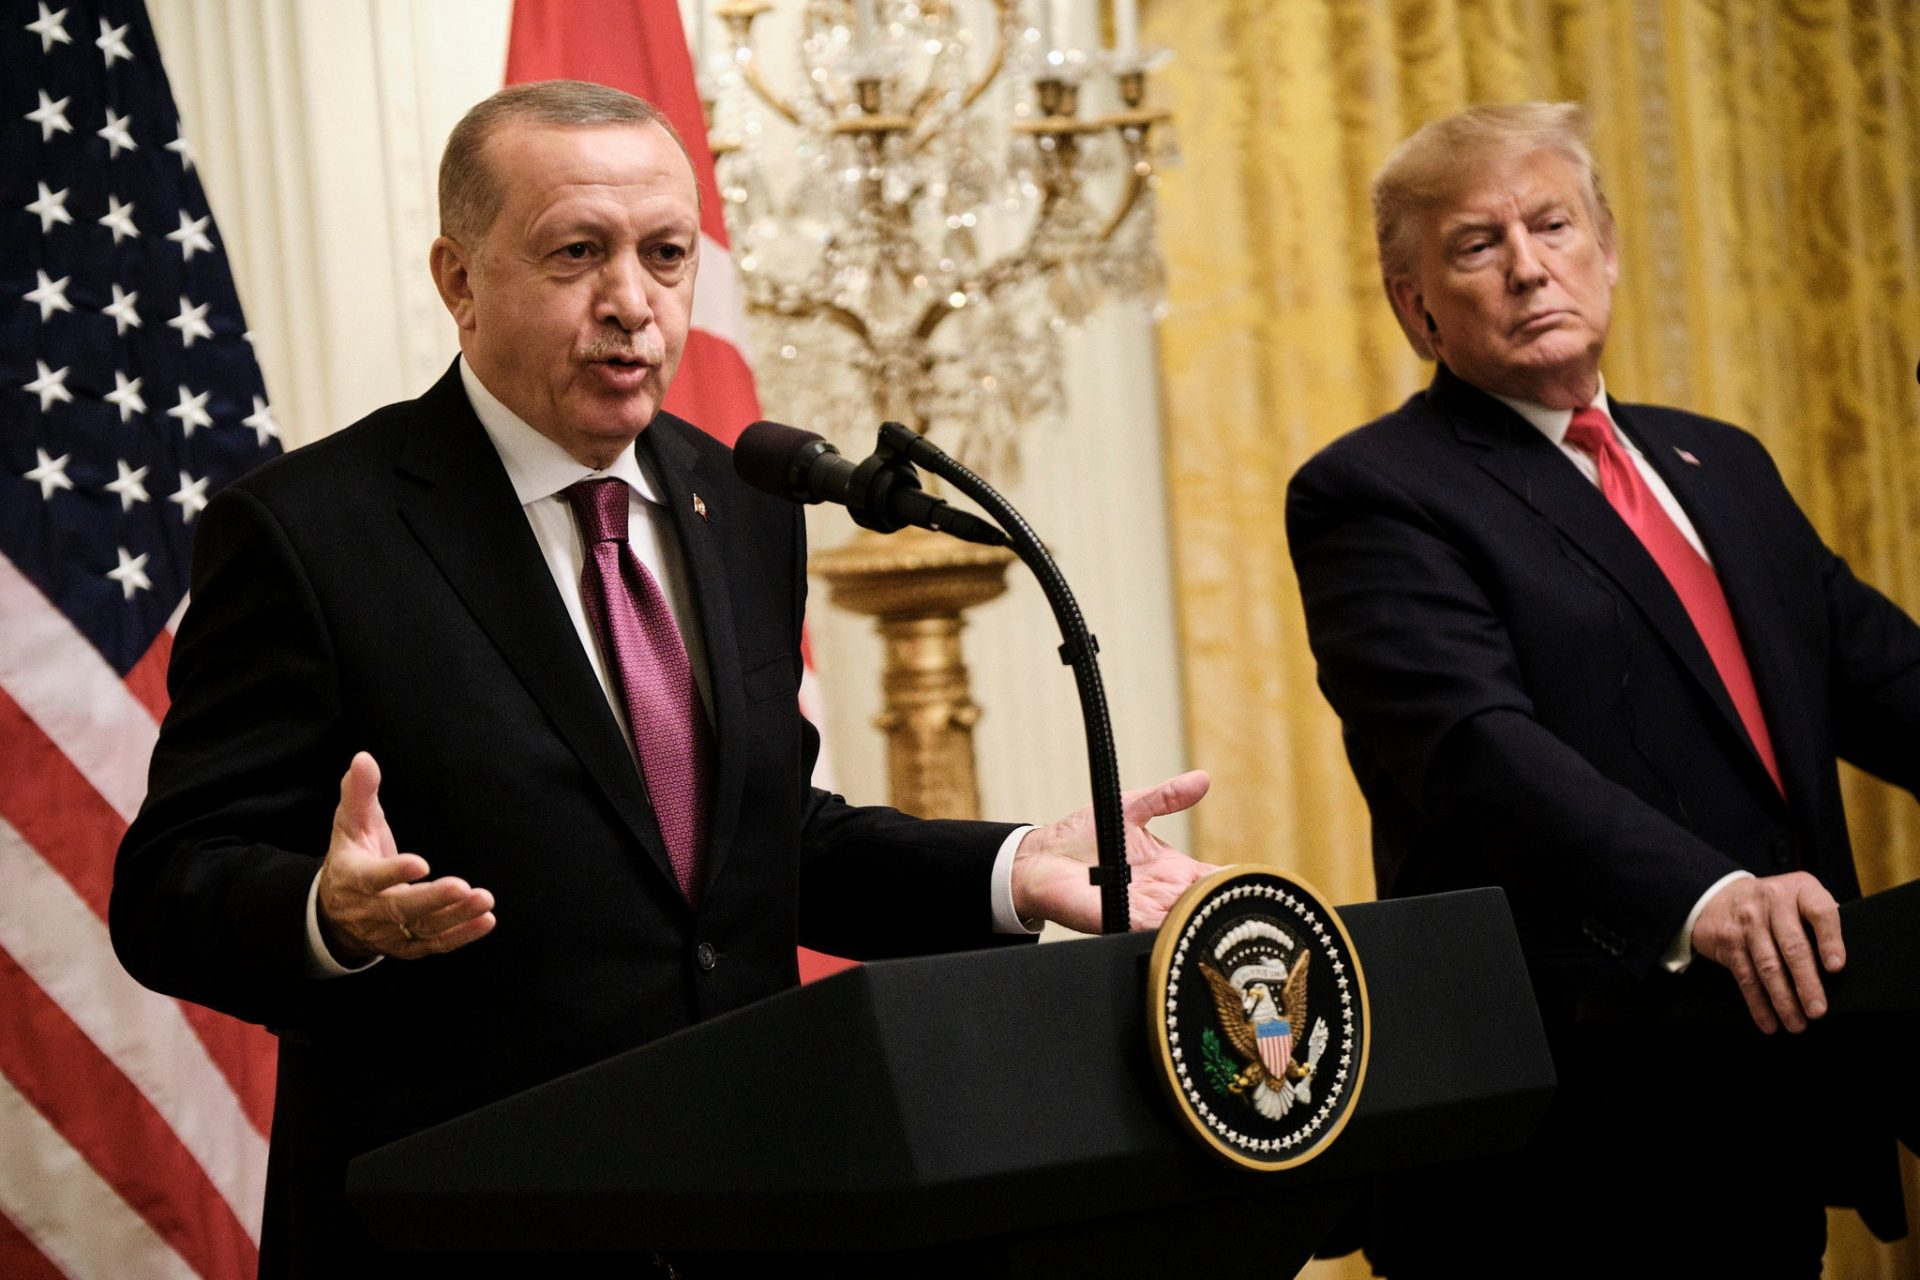 Behind the Scenes, Erdogan's Friendly White House Visit Had Tense Moments 3